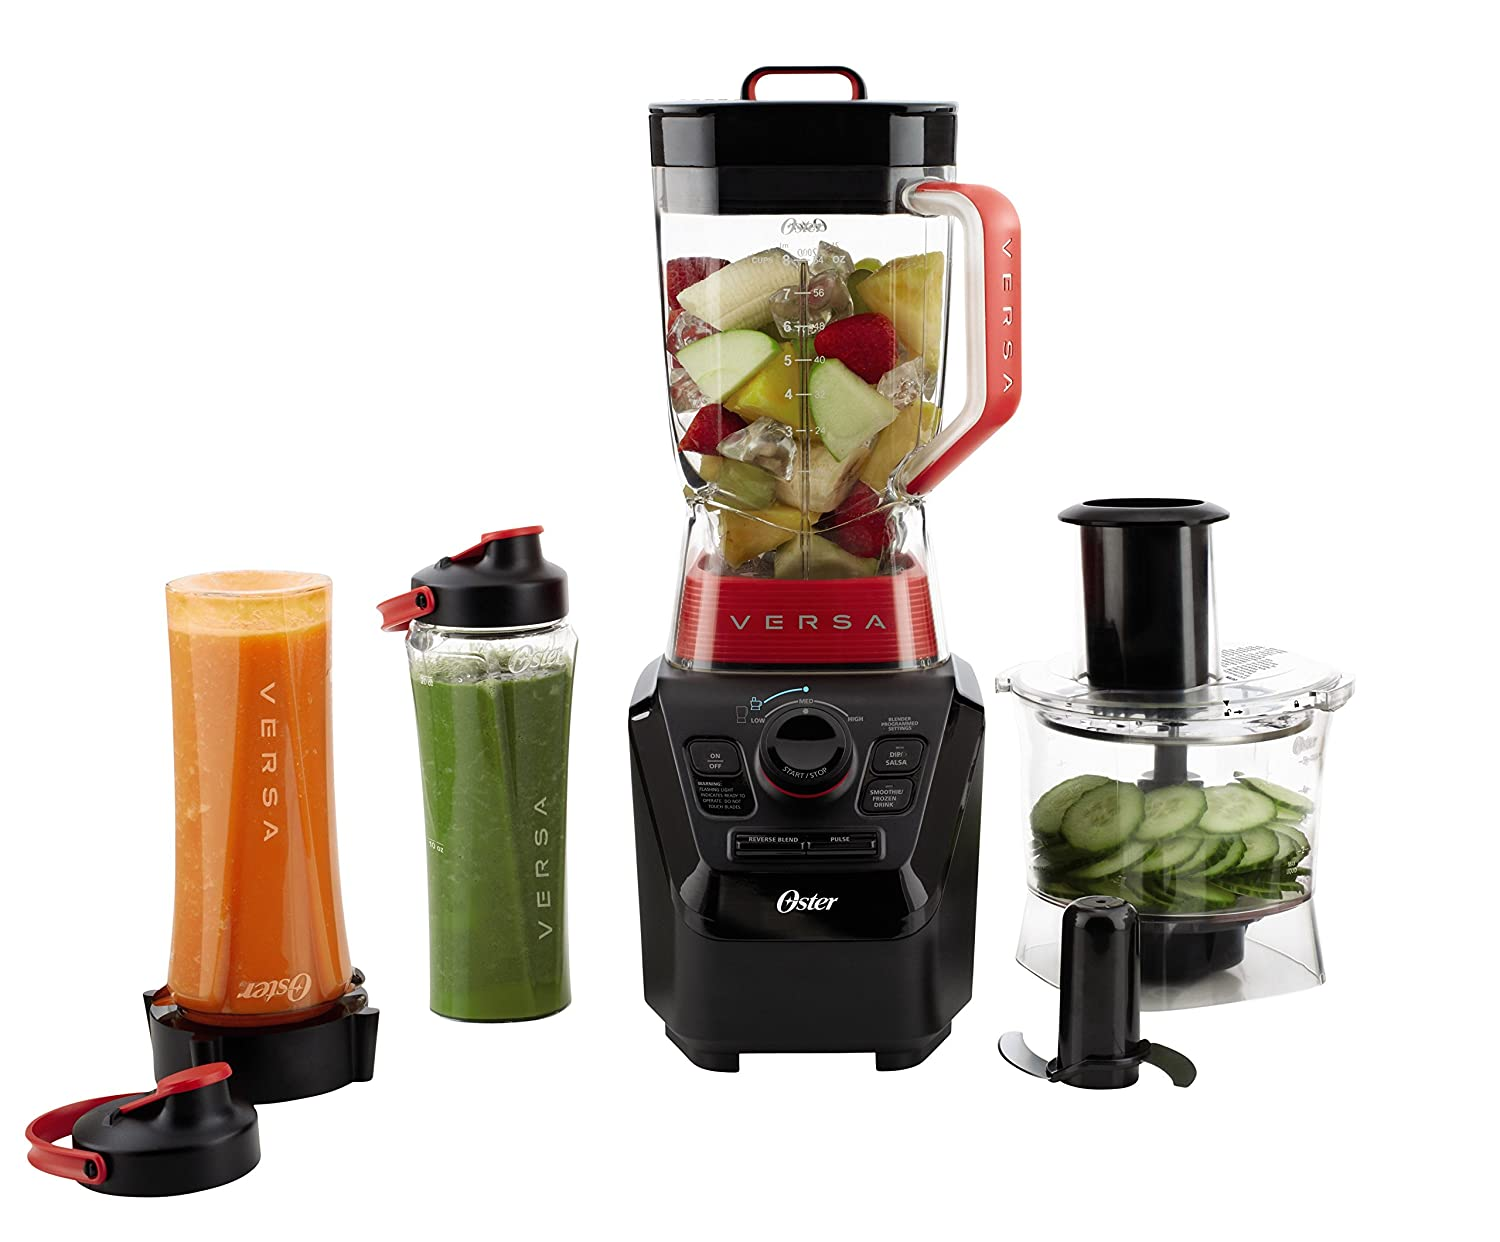 Oster VERSA BLSTVB-RV0-000 1400-watt Professional Performance Blender with Jar and Cookbooks Jarden Consumer Solutions